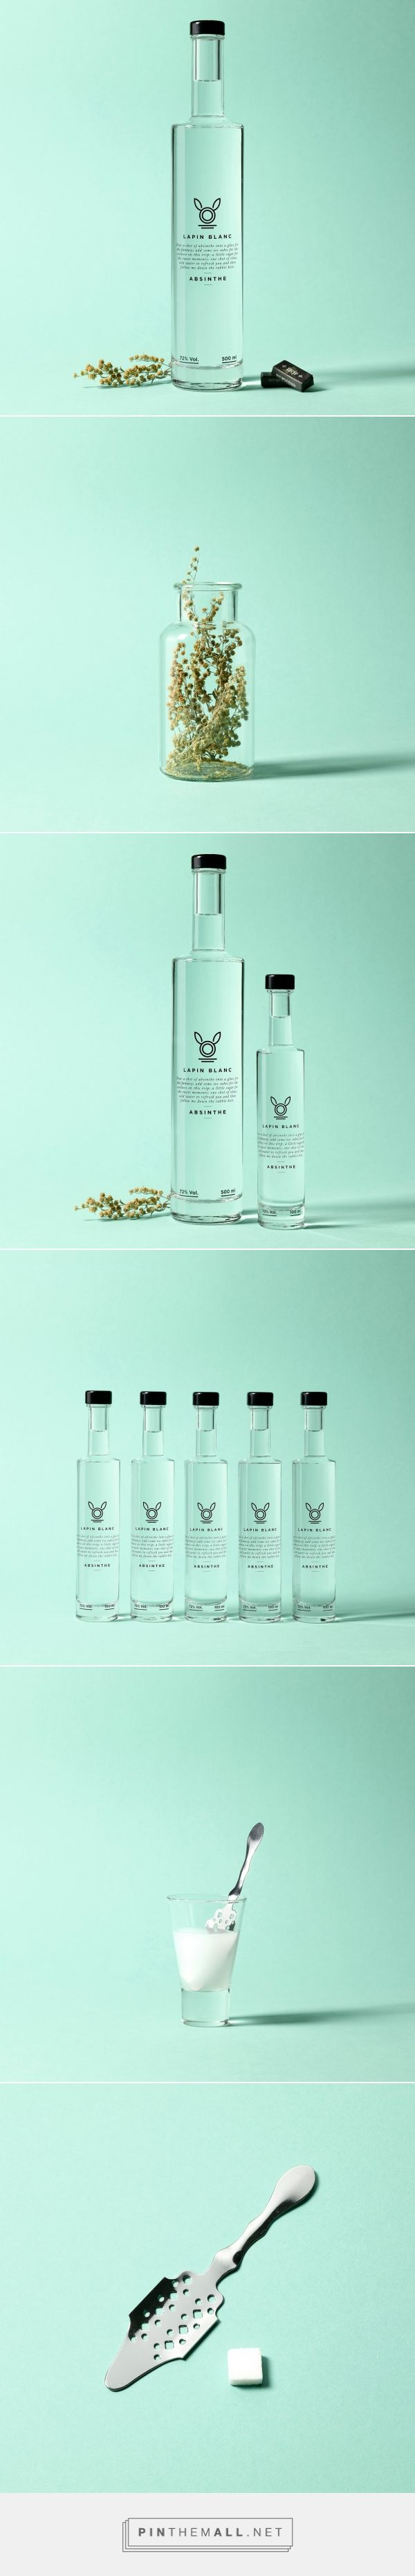 Lapin Blanc Absinthe (Concept) - Packaging of the World - Creative Package Design Gallery - http://www.packagingoftheworld.com/2016/07/lapin-blanc-absinthe-concept.html